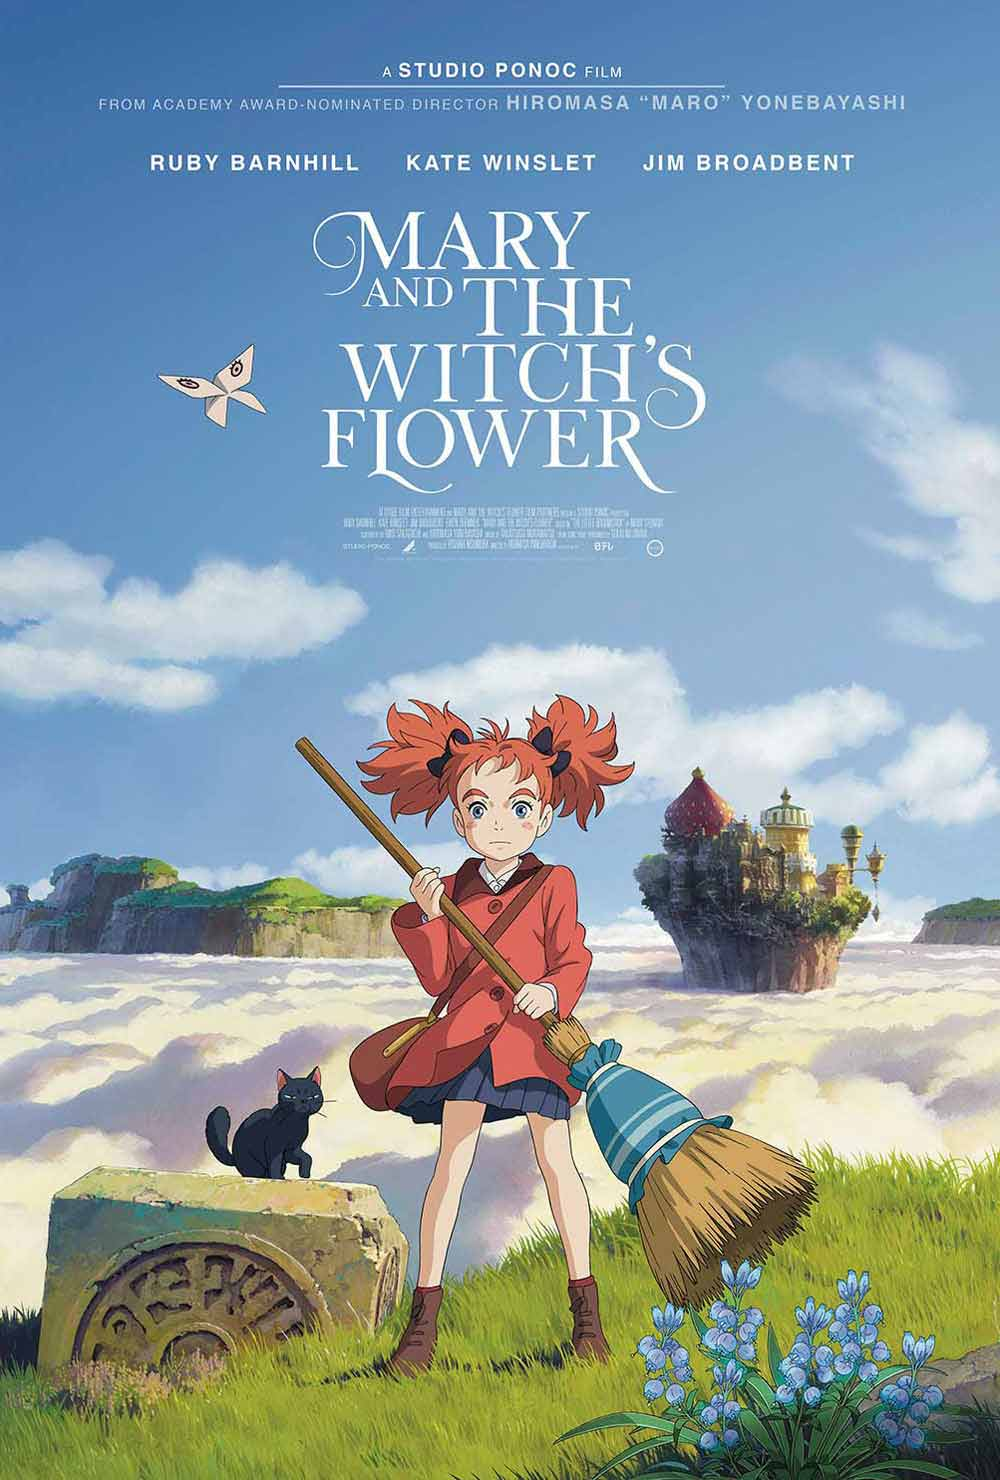 Mary and the Witch's Flower (2018) - Directed by: Hiromasa YonebayashiStarring: Hana Sugisaki, Yuki Amami; dubbed by Ruby Barnhill, Kate Winslet, Jim BroadbentRated: PGRuntime: 1hr 42minTMM Score: 3 StarsSTRENGTHS: AnimationWEAKNESSES: Simplicity, Derivative, Pacing